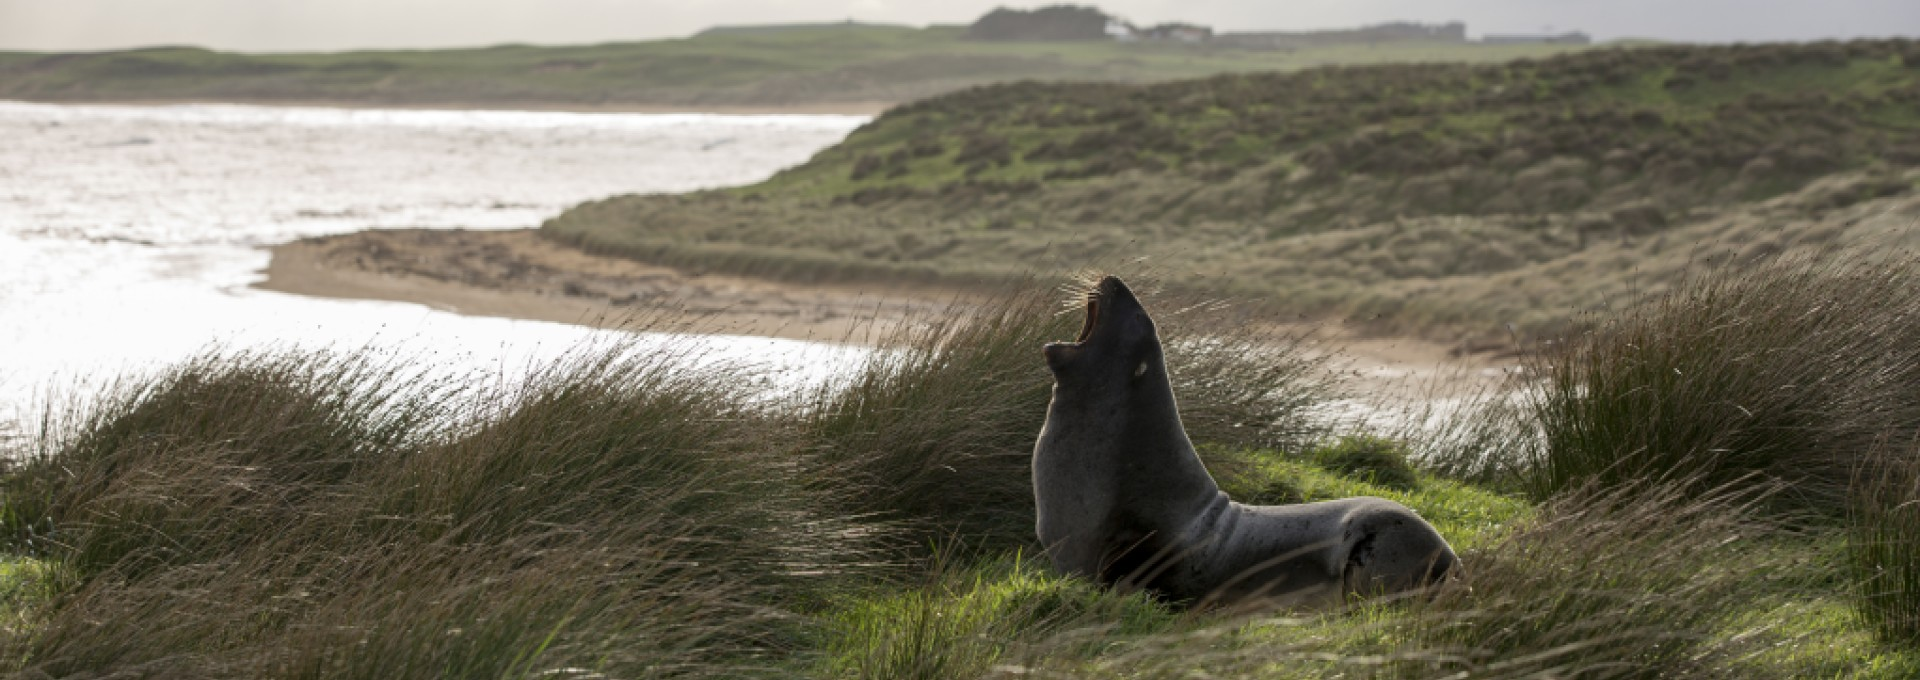 See a range of marine wildlife on The Catlins coast in Southland